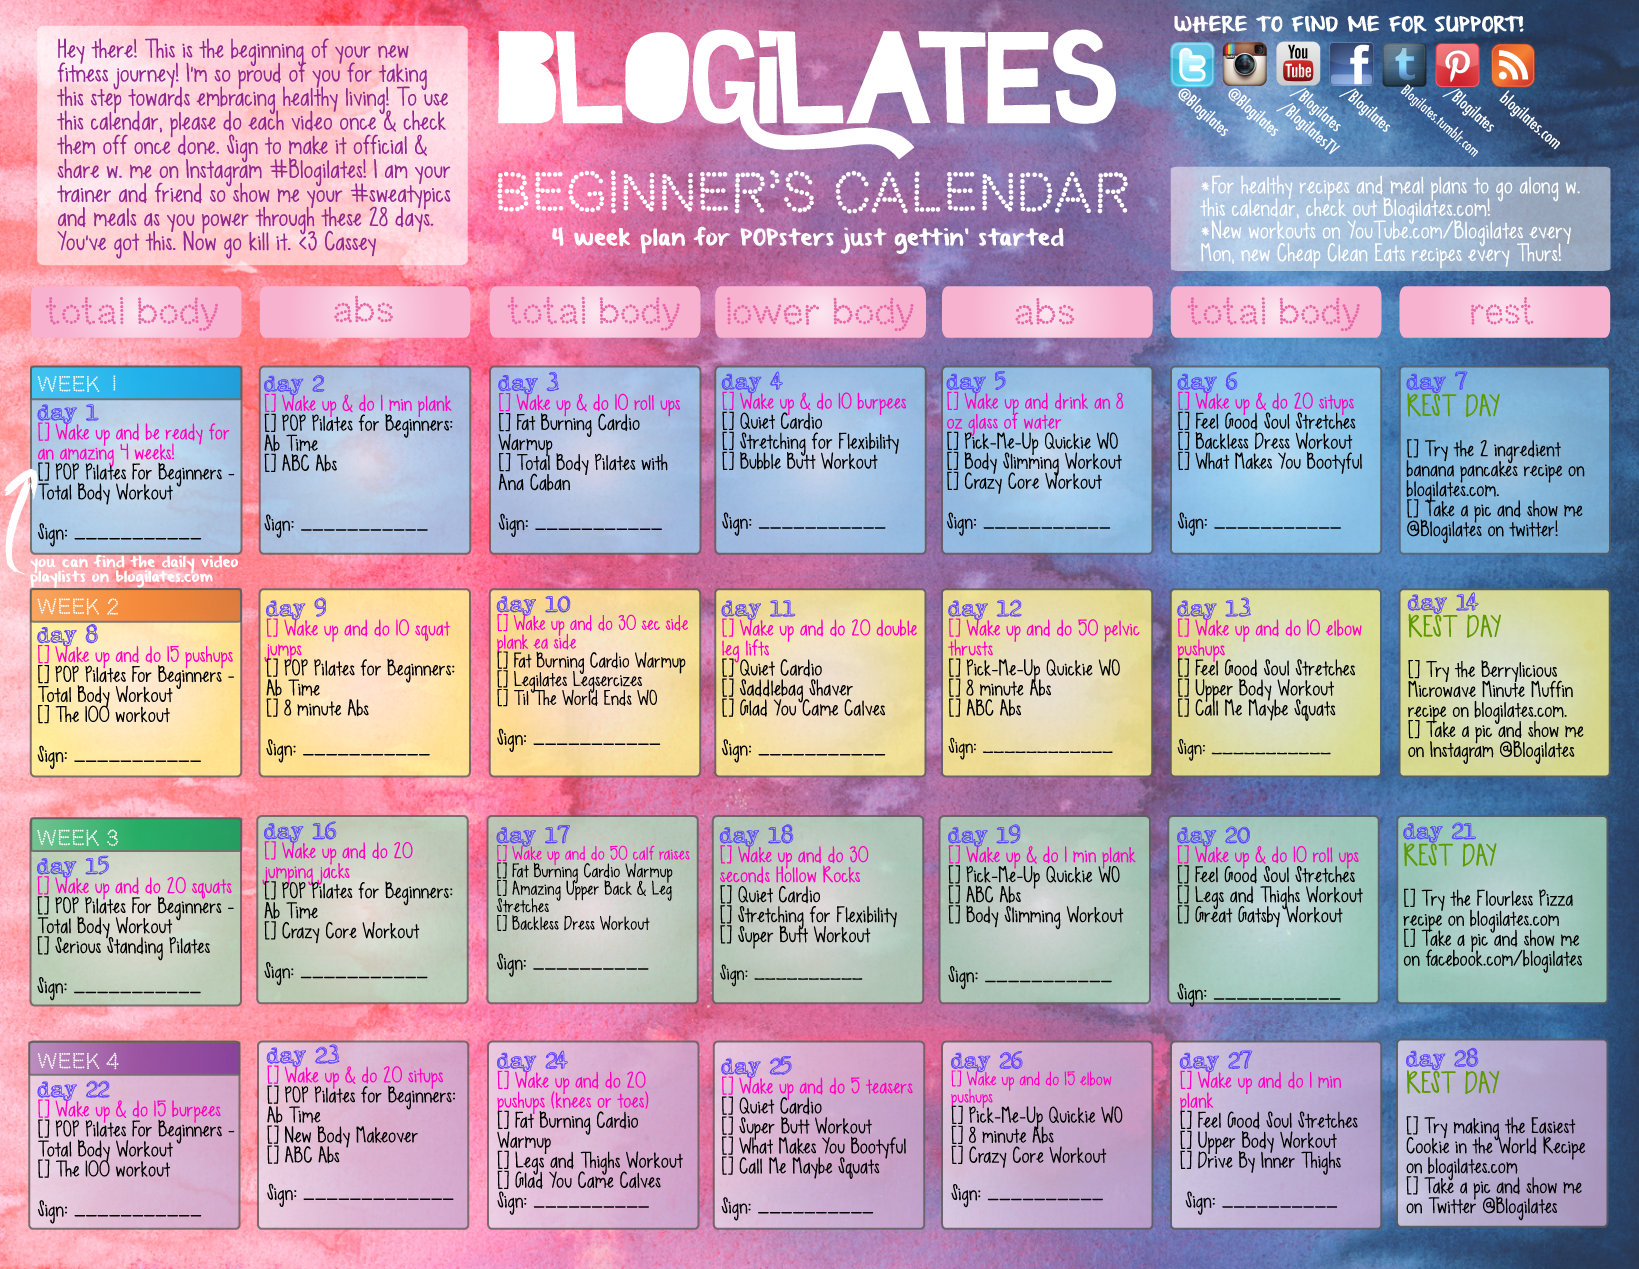 POP Pilates for Beginners Calendar! She has links to her videos